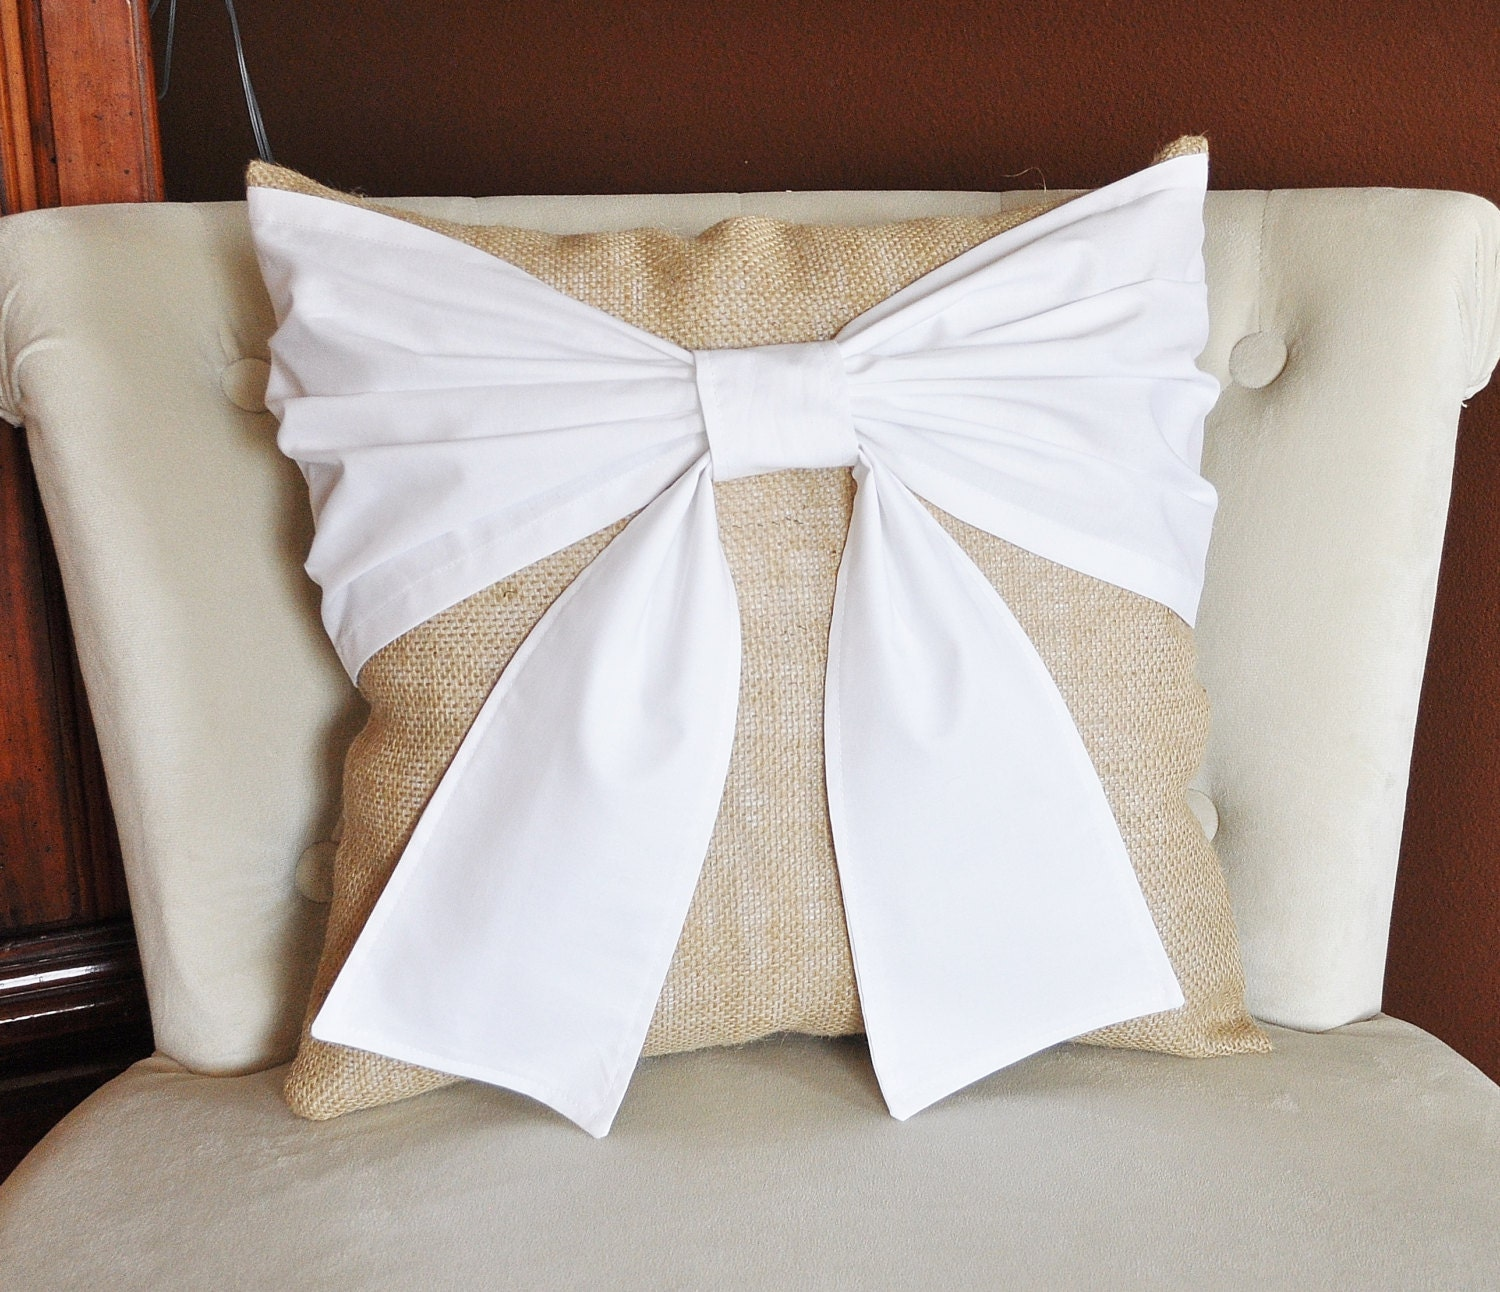 Burlap Throw Pillows Etsy : Throw Pillow White Bow on Burlap Pillow 14x14 Rustic Home